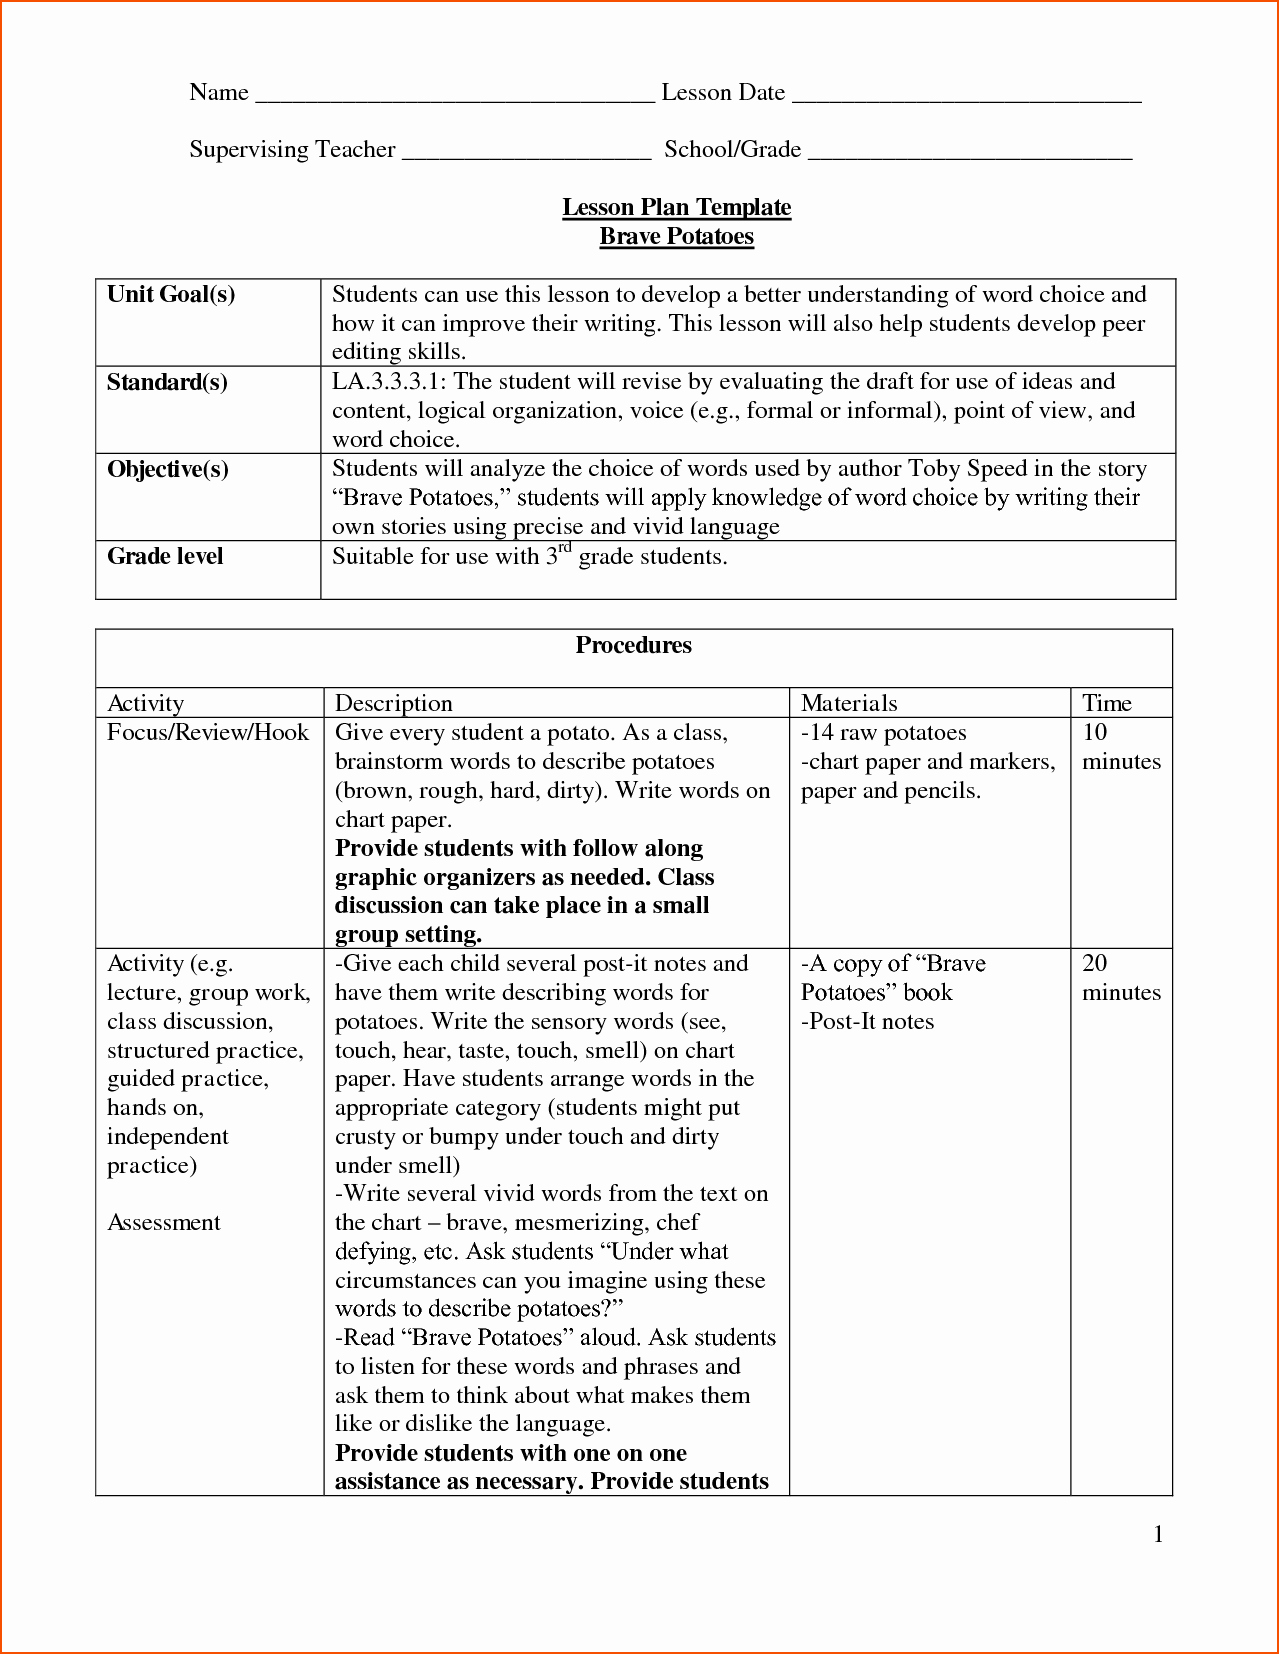 Lesson Plan Template Doc Lovely 8 Lesson Plan Template Doc Bookletemplate